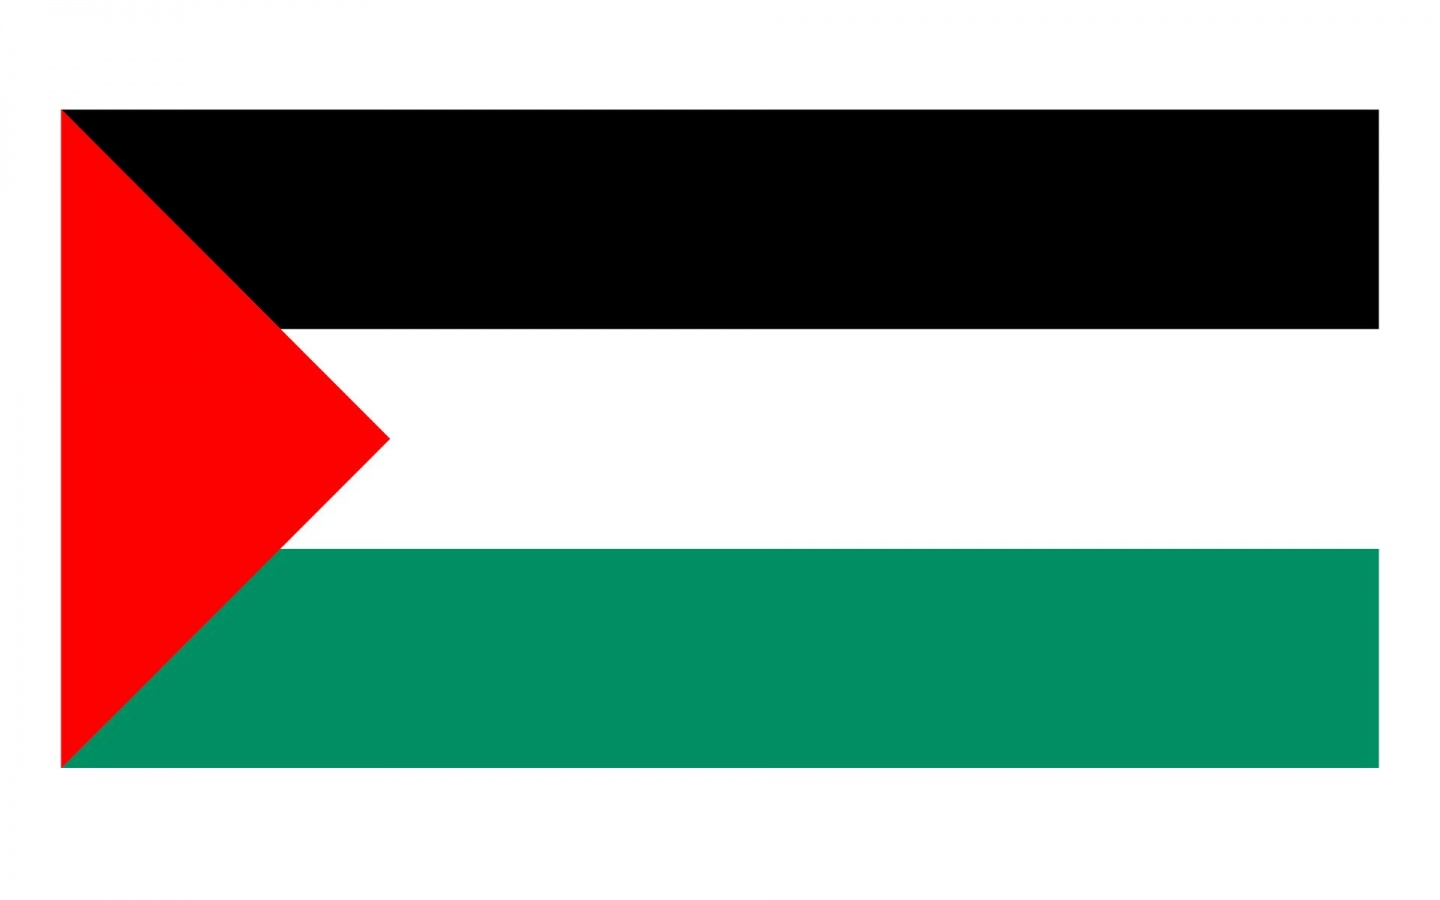 Palestine Flag 021png desktop wallpapers and stock photos 1440x900